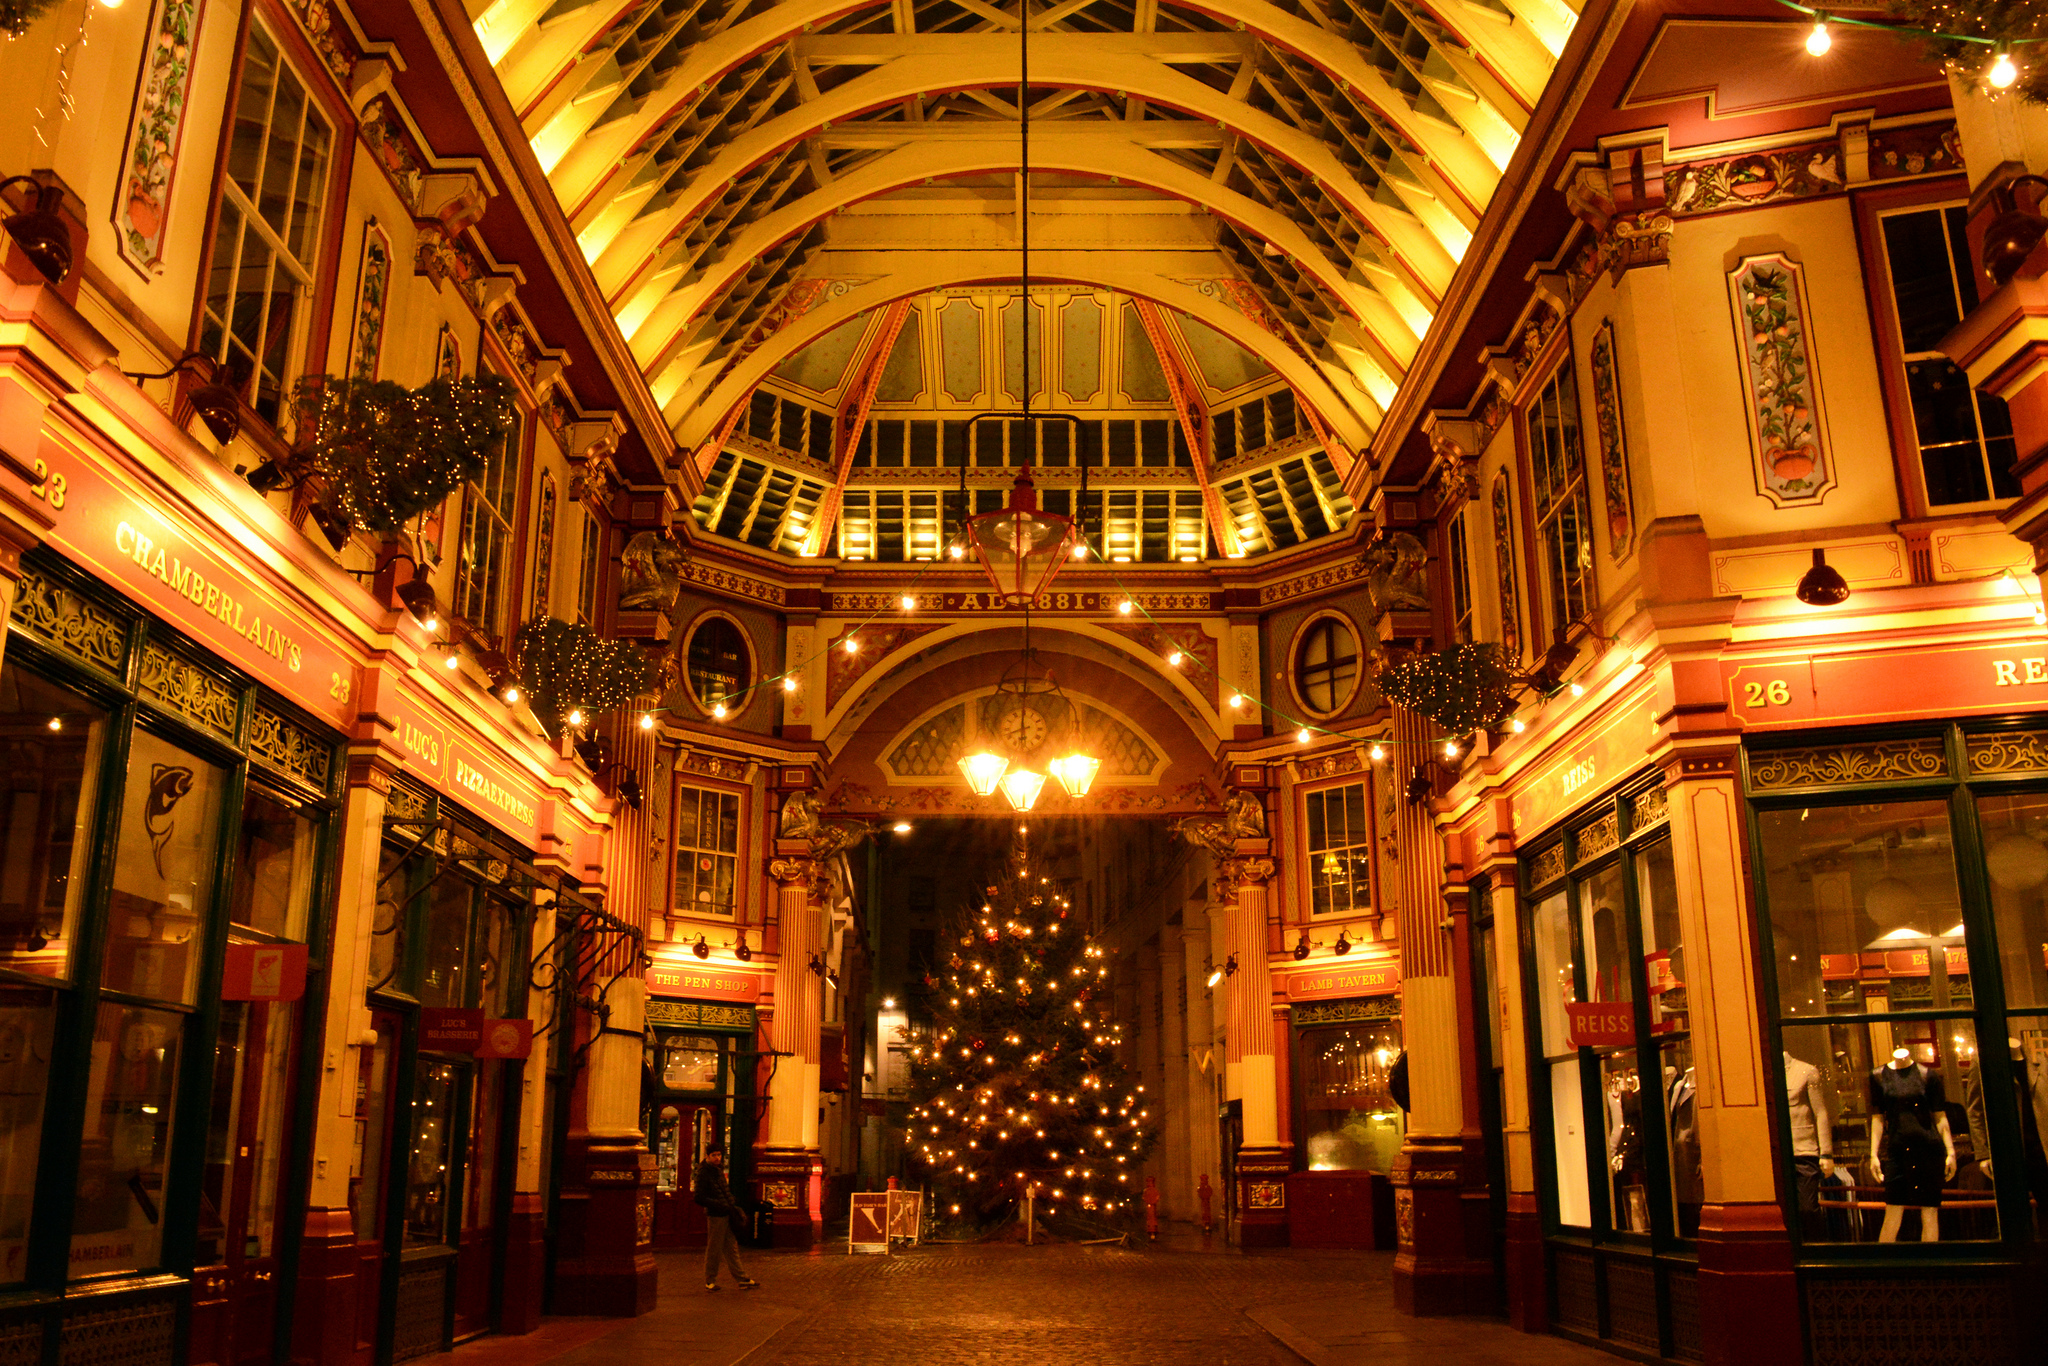 London At Christmas Time.3 Fun Holiday Things To Do In London At Christmas This